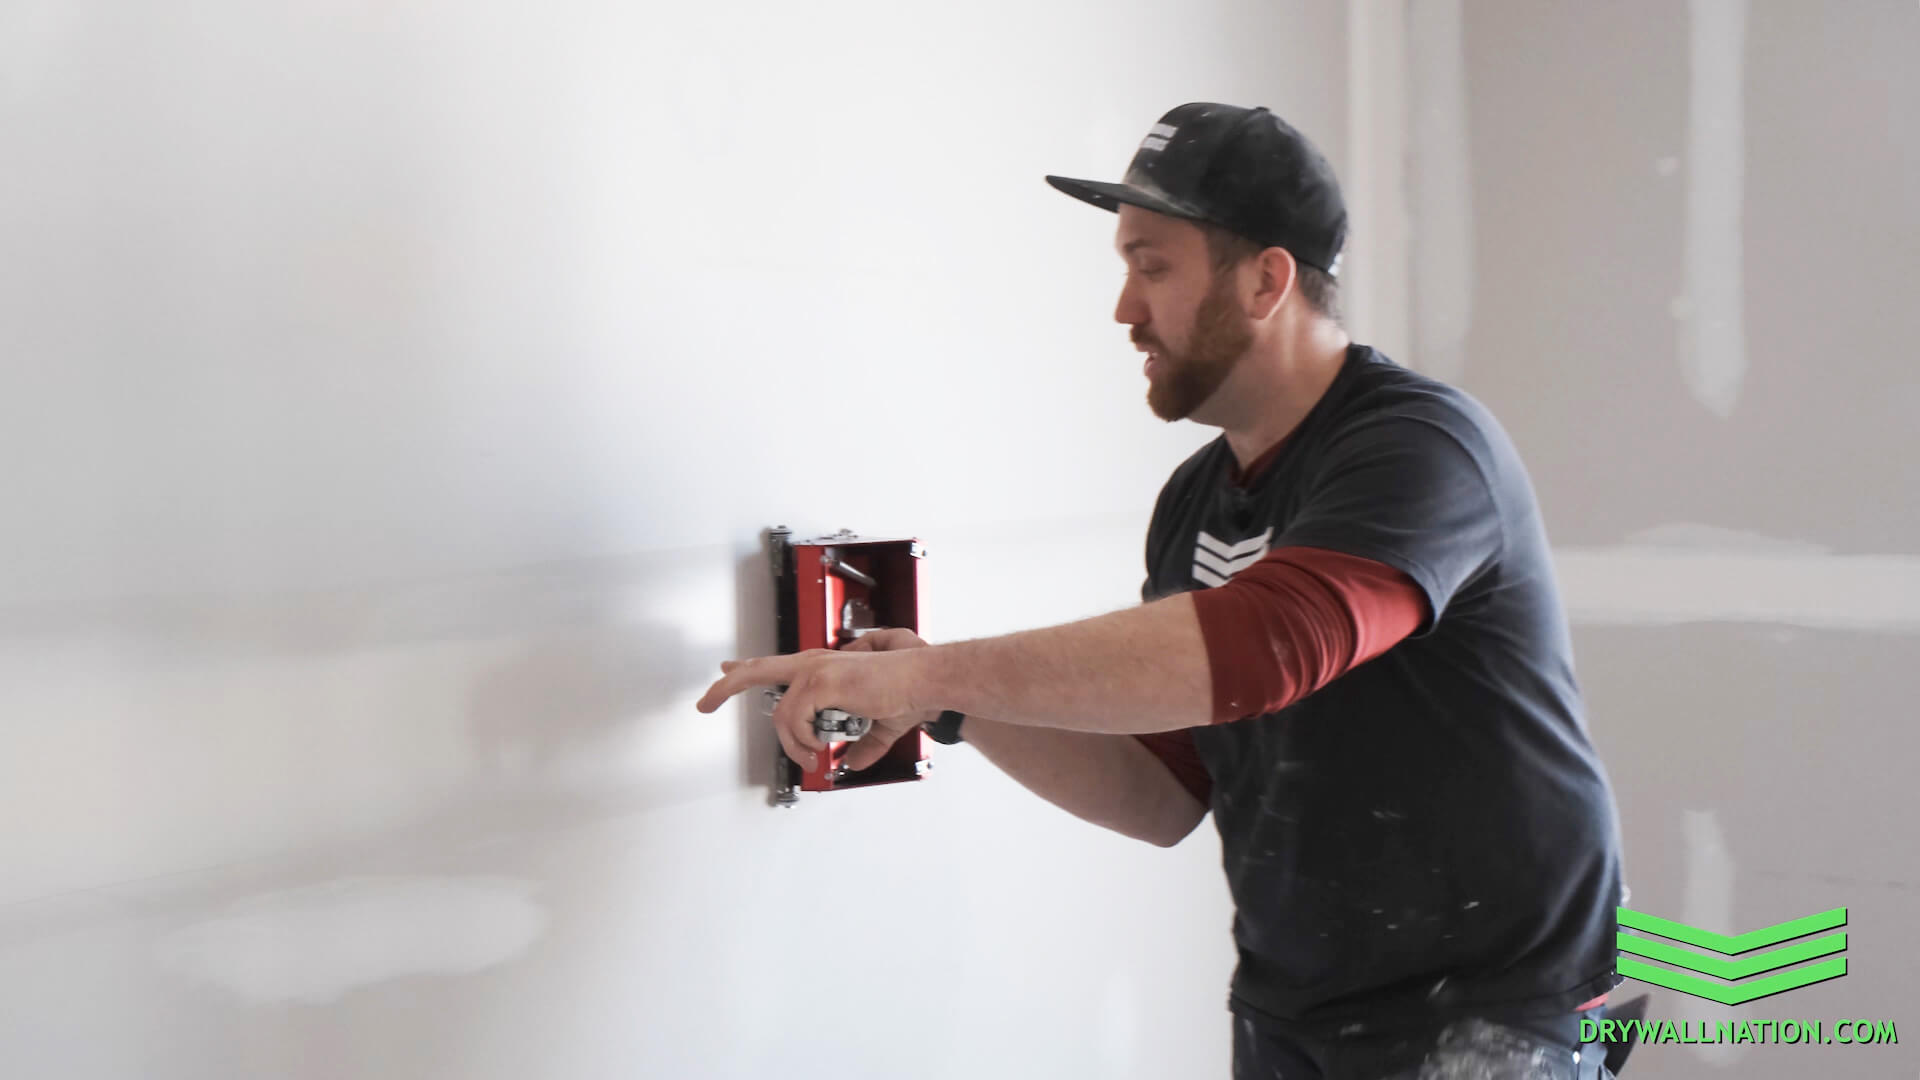 How to Use a Drywall Flat Box on Walls